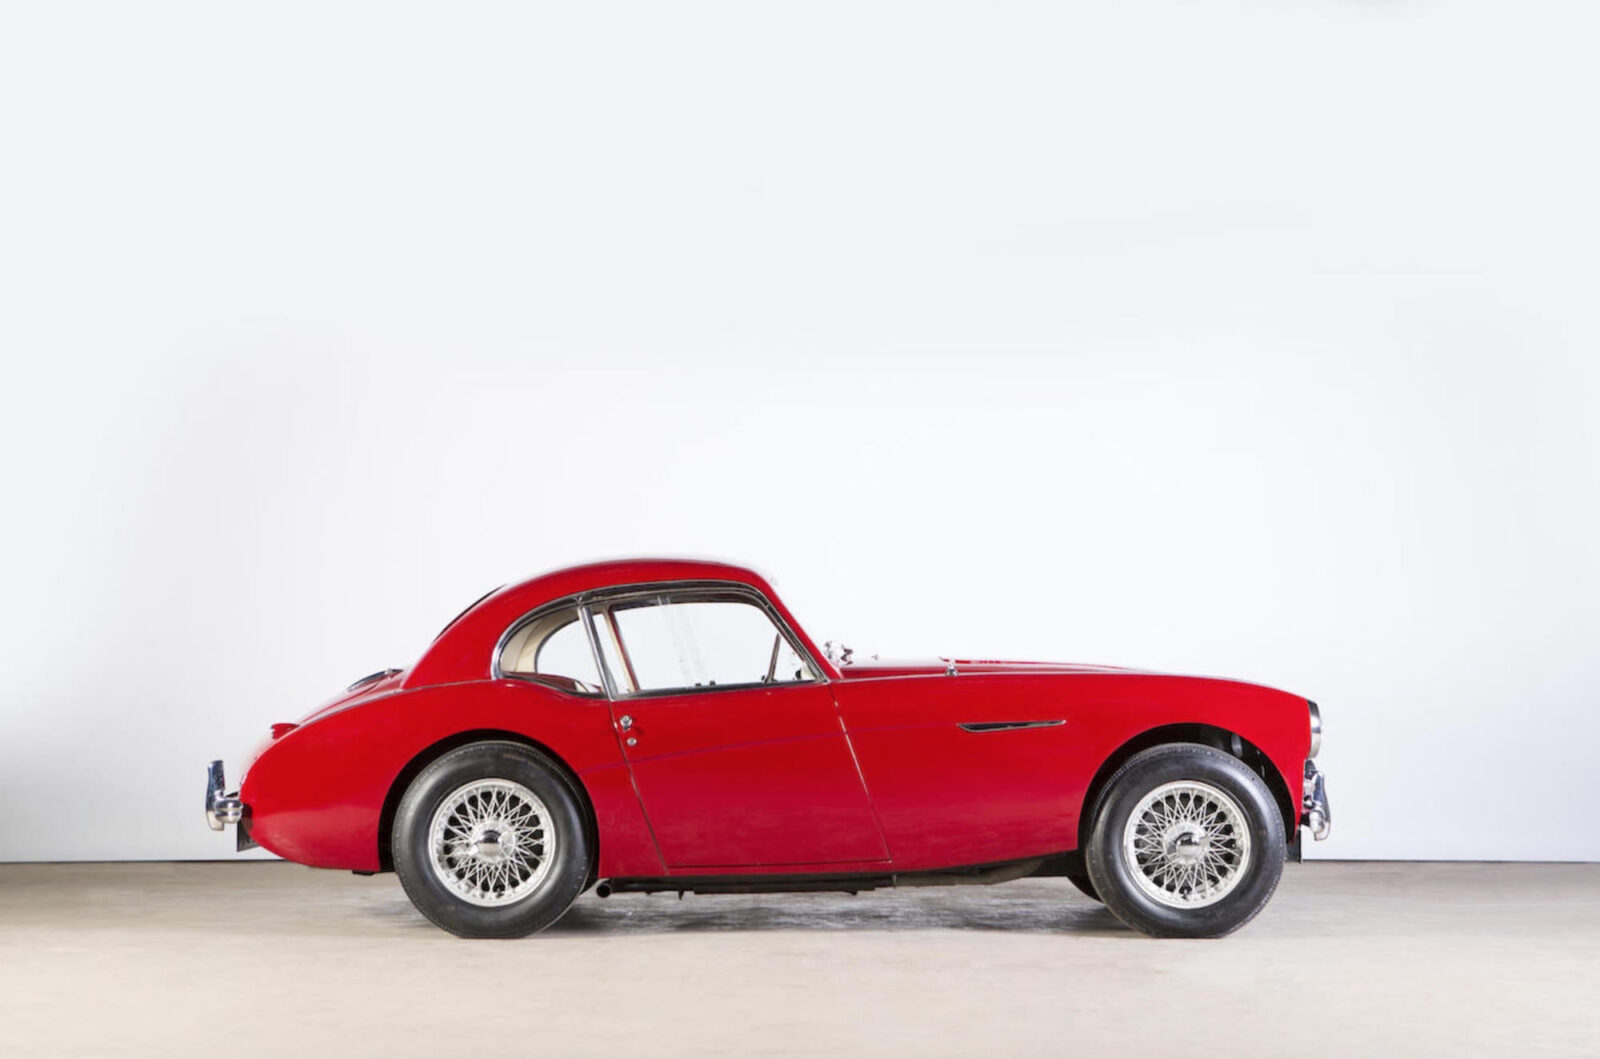 Austin Healey Coupe 5 1600x1059 - Donald Healey's Personal Austin-Healey 100S Coupe